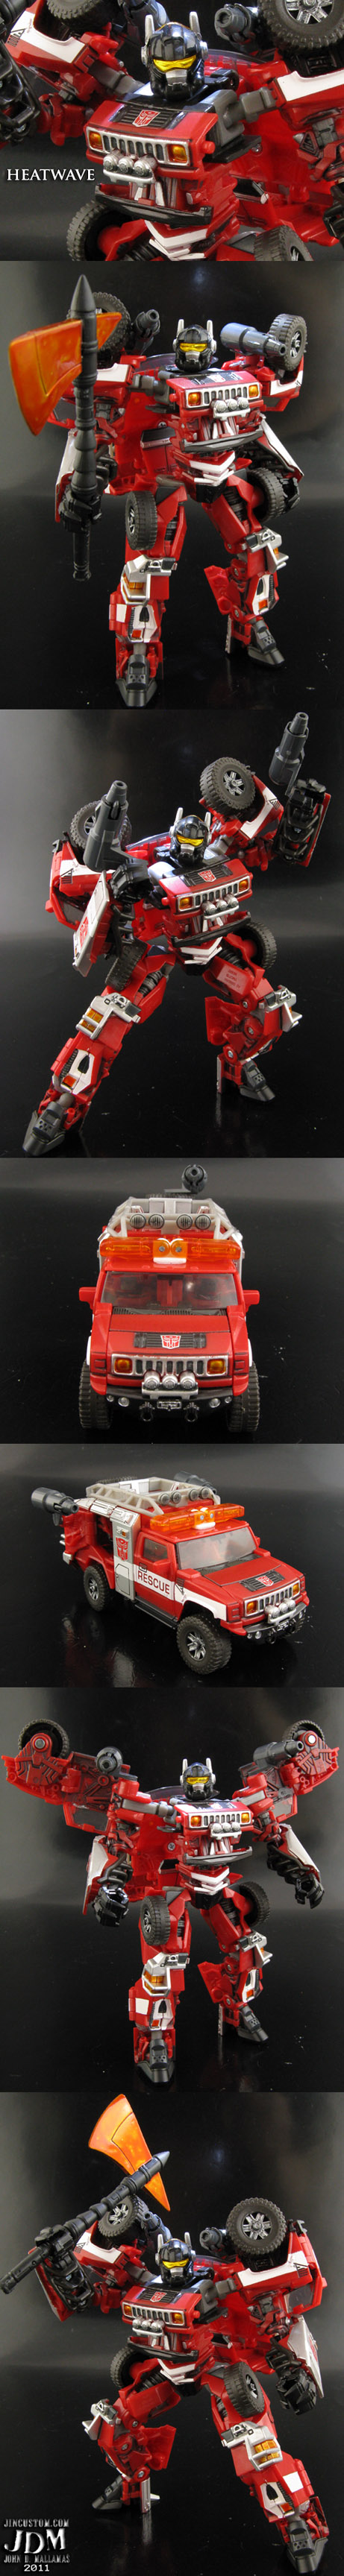 Transformers Heatwave Custom